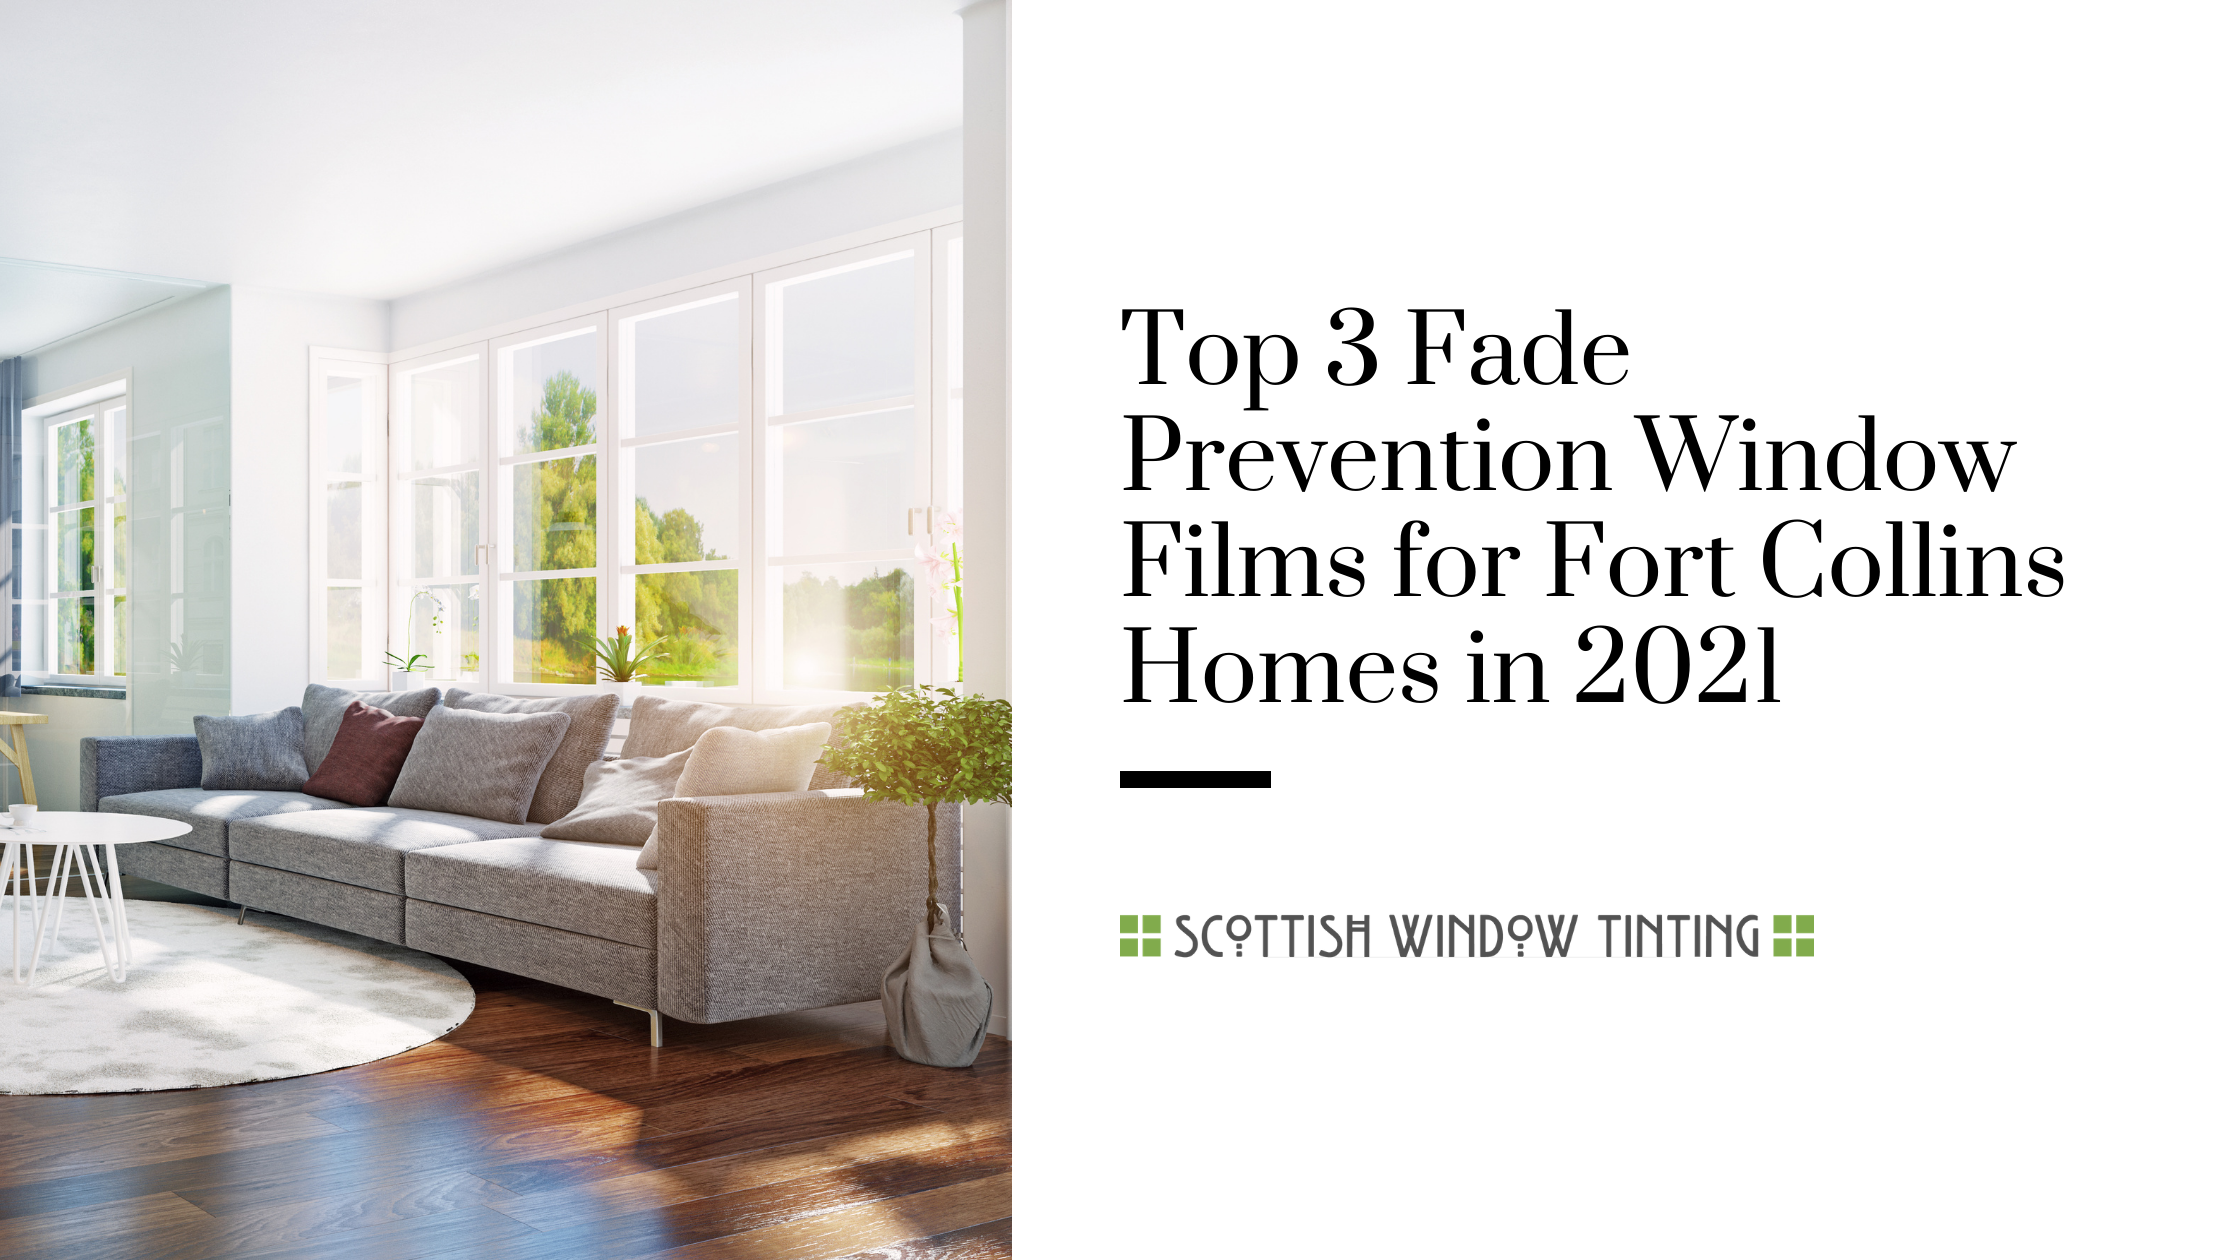 Top 3 Fade Prevention Window Films for Fort Collins Homes in 2021